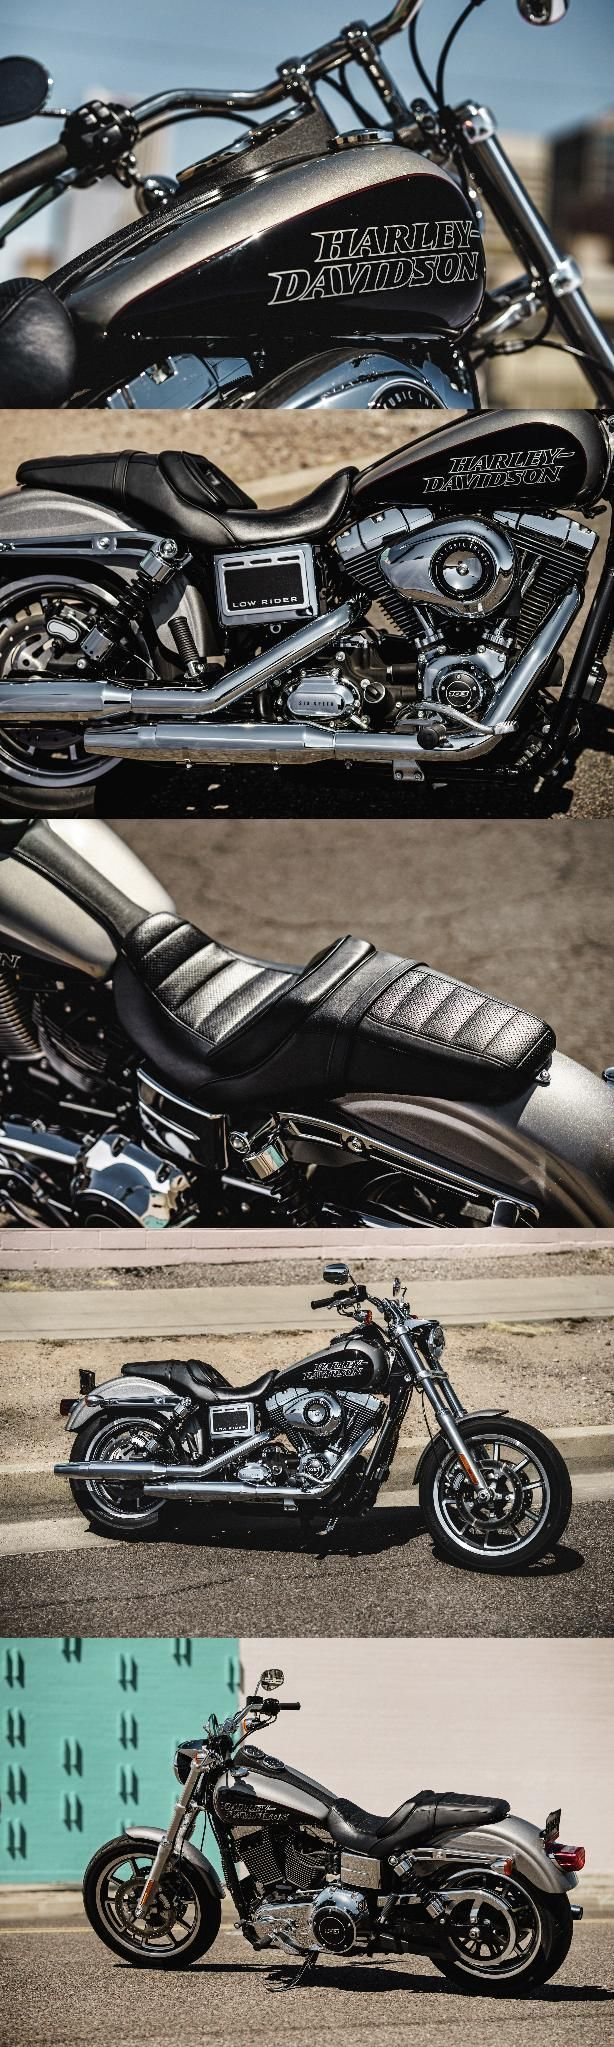 The Harley-Davidson Low Rider motorcycle is back with a vengeance. Easy-riding street custom style hits a new low. And a new high. #harleyddavidsonstreet #harleydavidsoncustomdyna